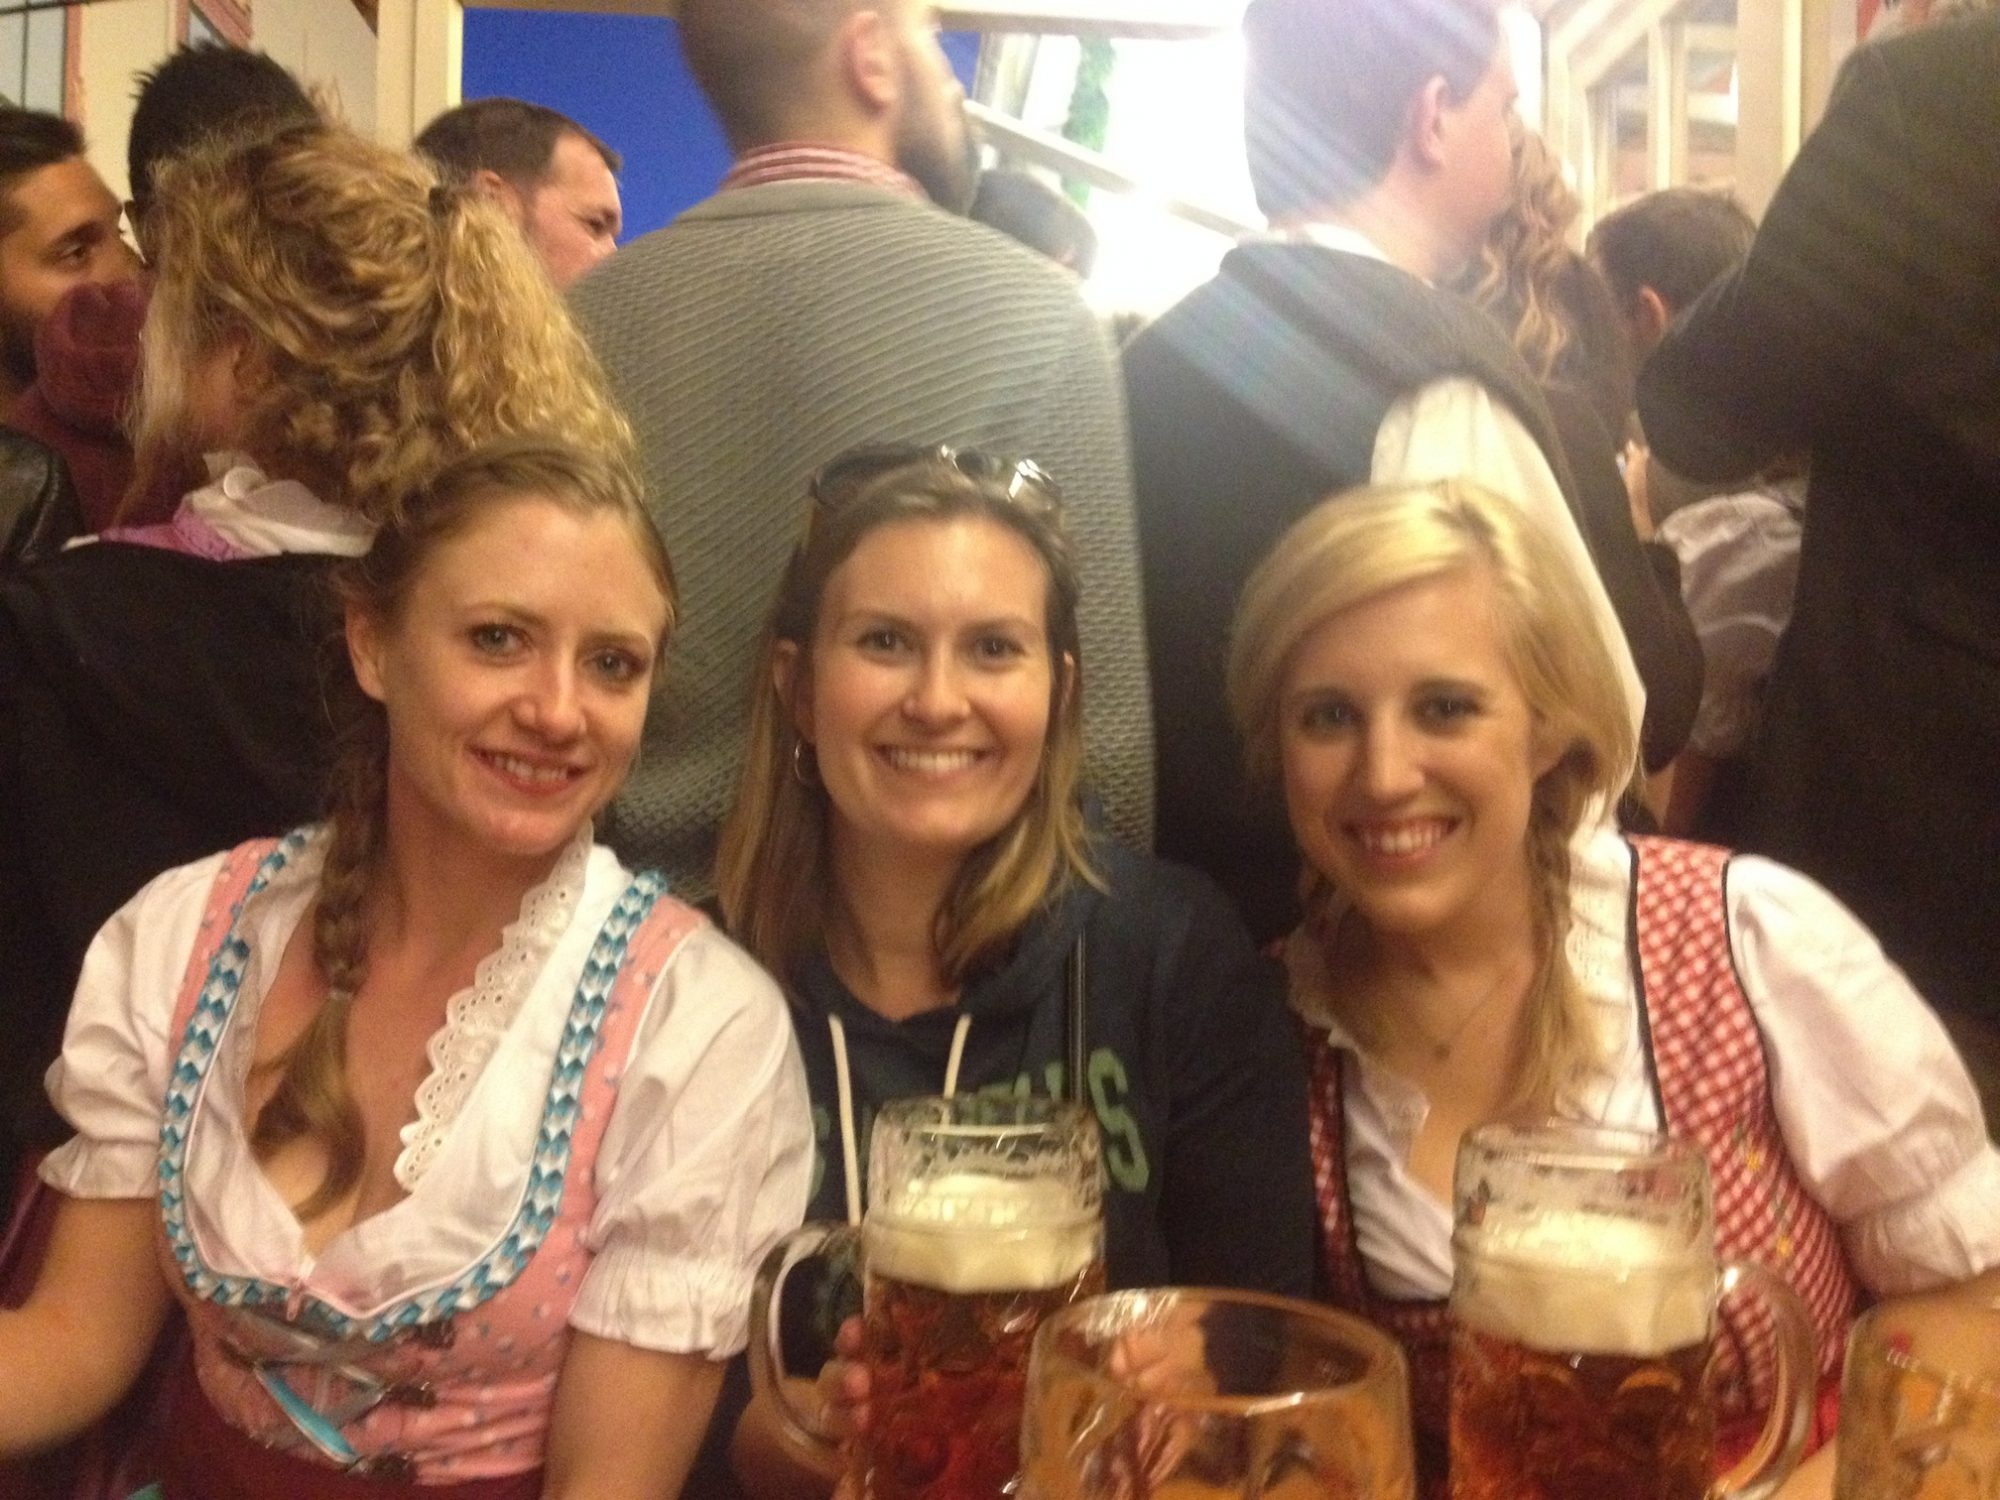 Samantha and her flat mates, who donned dirndls for Oktoberfest.